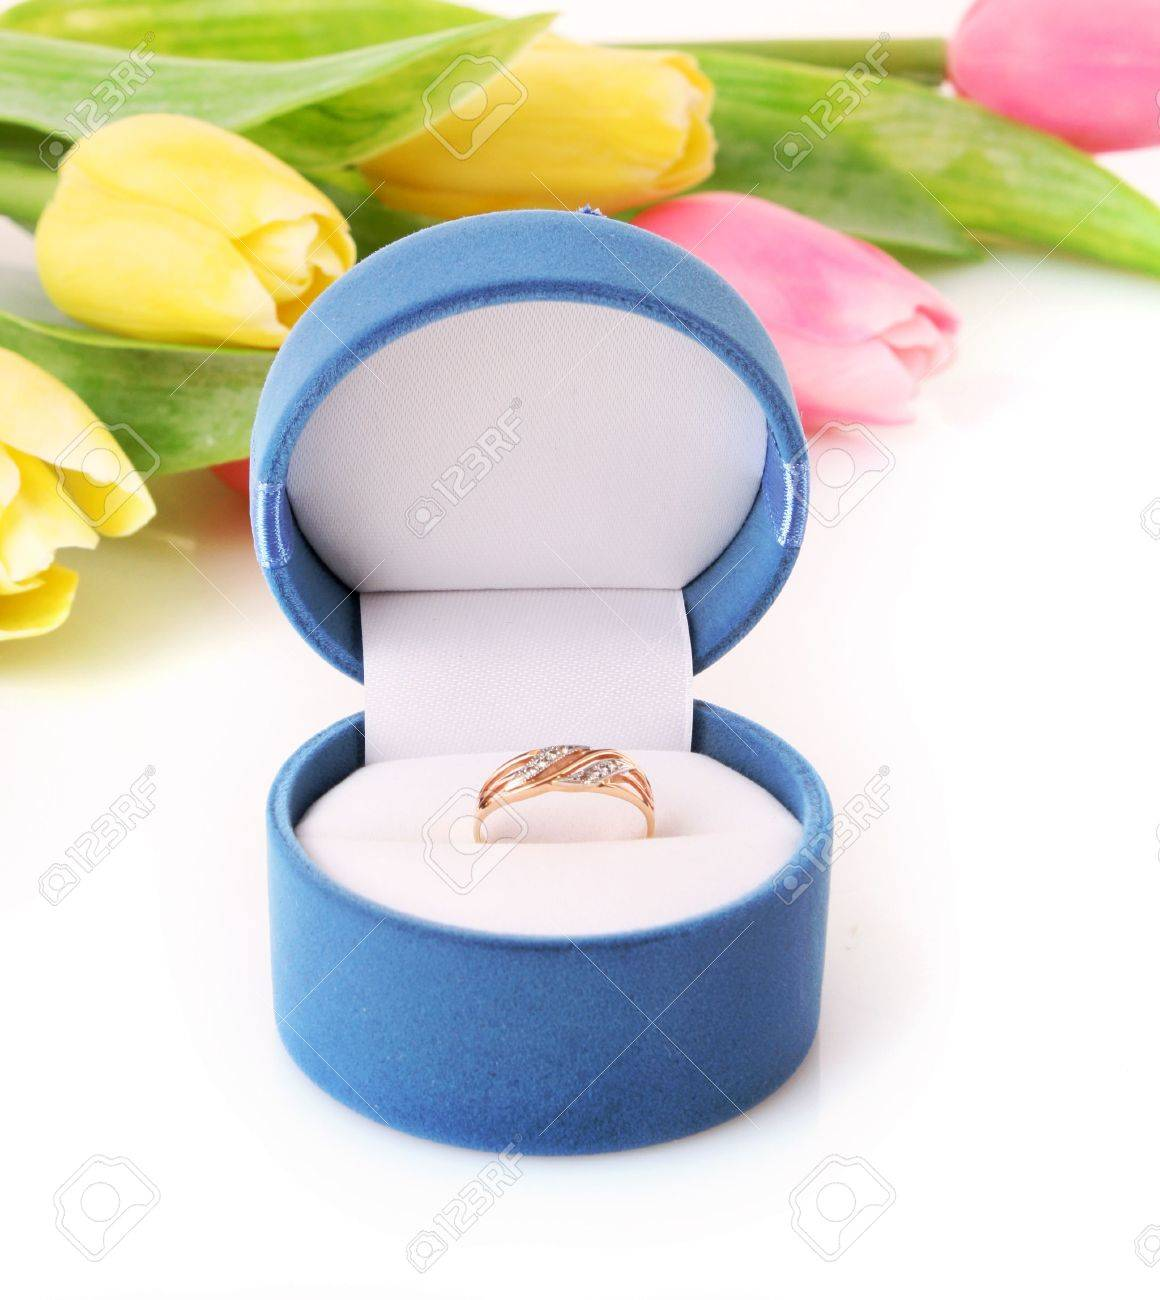 Gold  engagement ring in box on the flowers background Stock Photo - 6801783